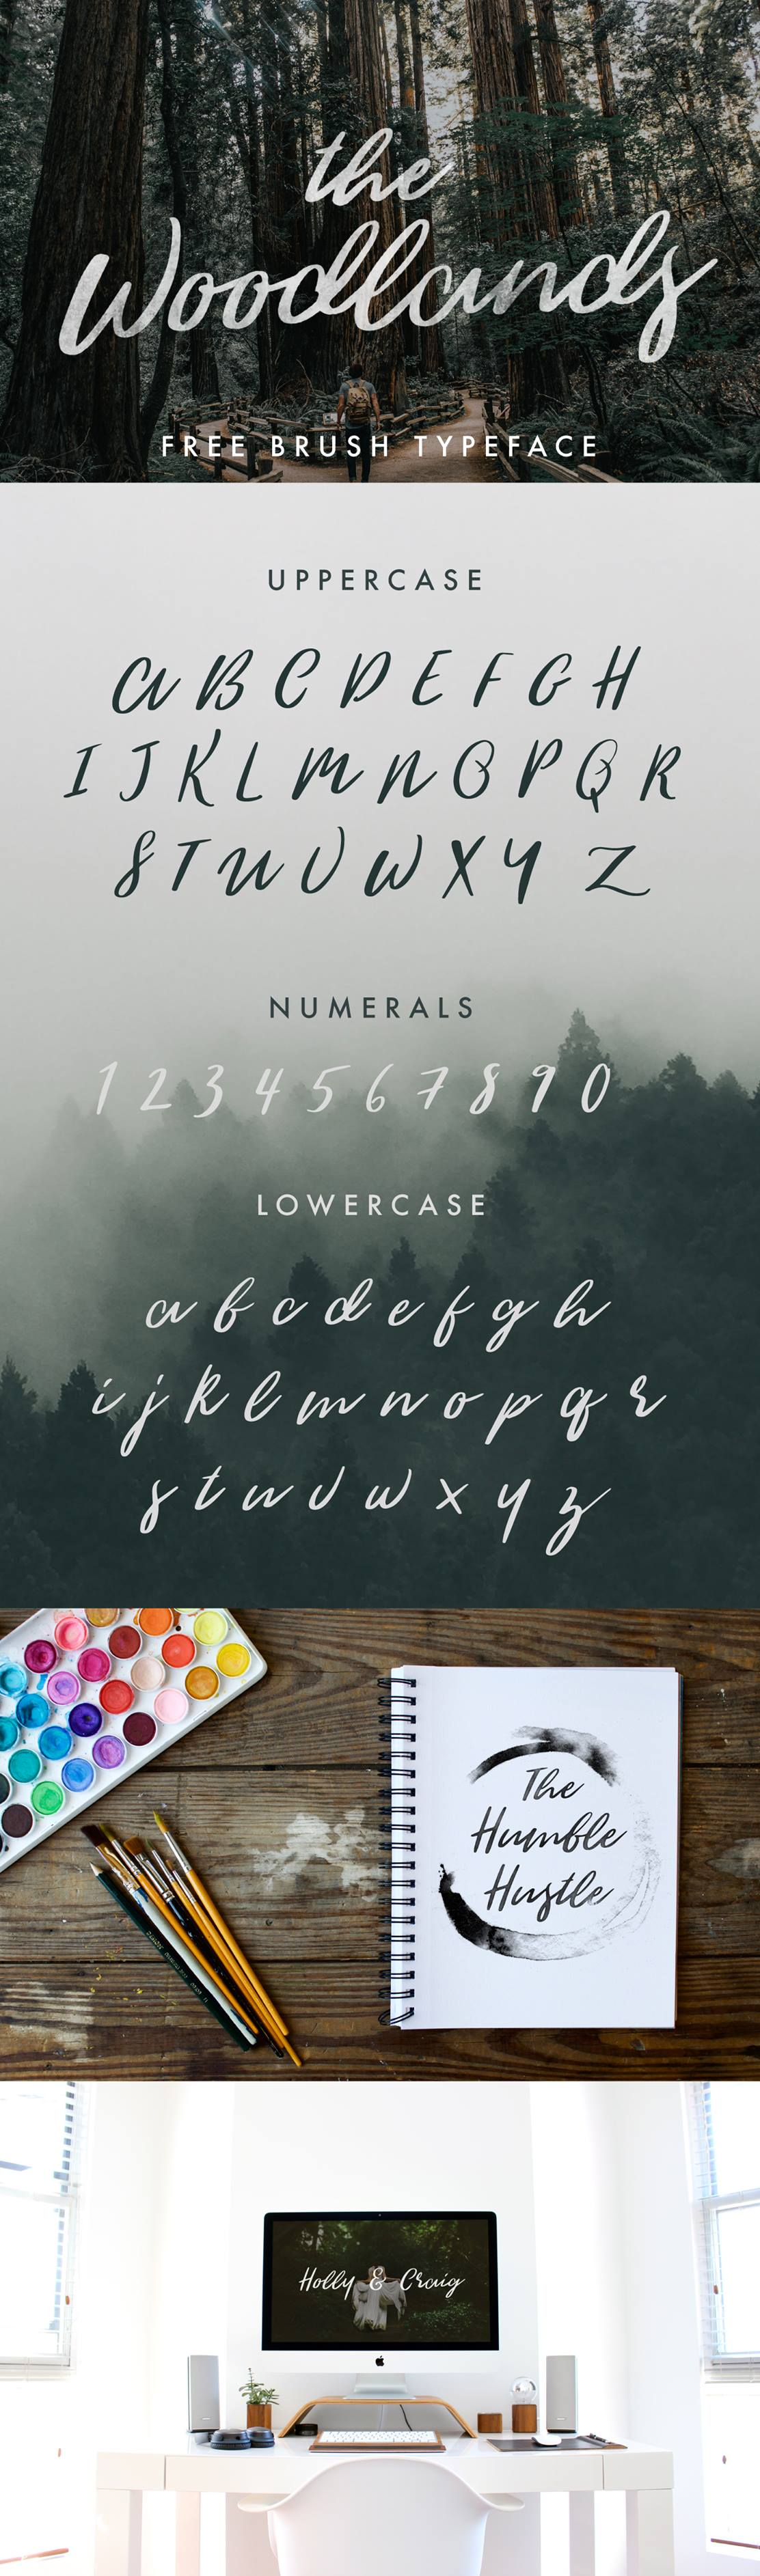 The-Woodlands-Free-Modern-Calligraphy-Font